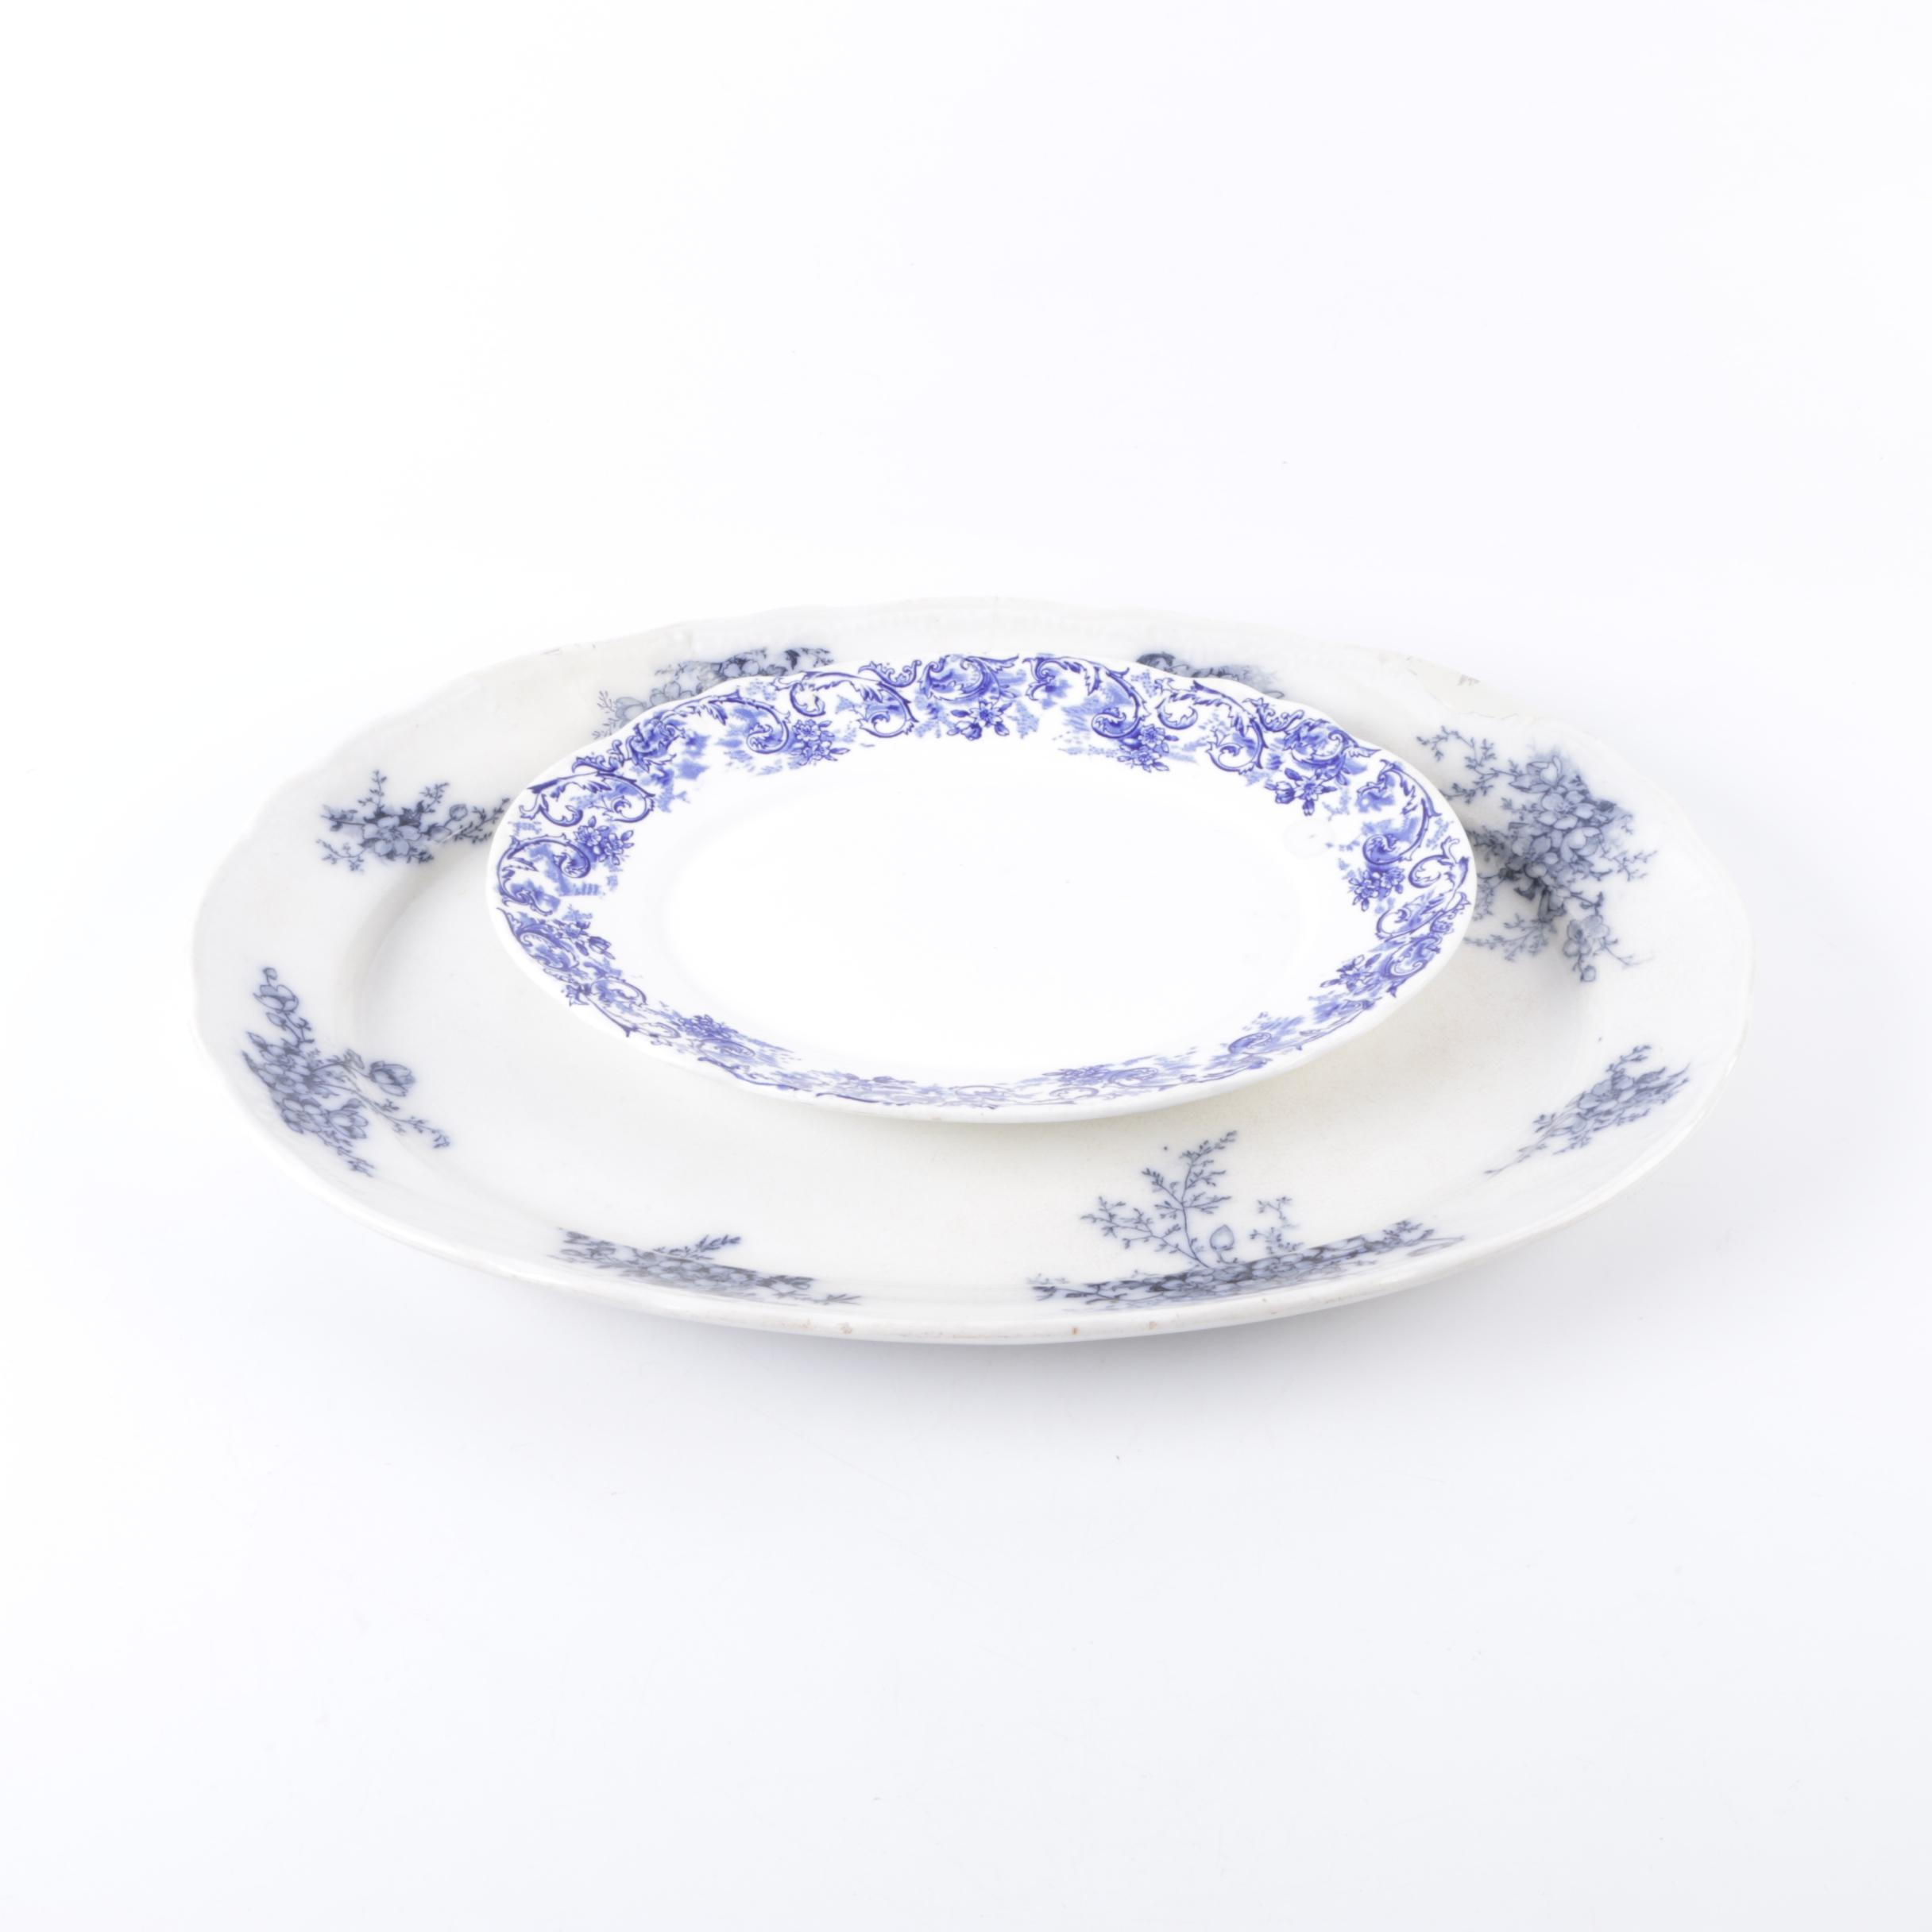 Late 19th Century John Maddock & Sons Porcelain Platter and More